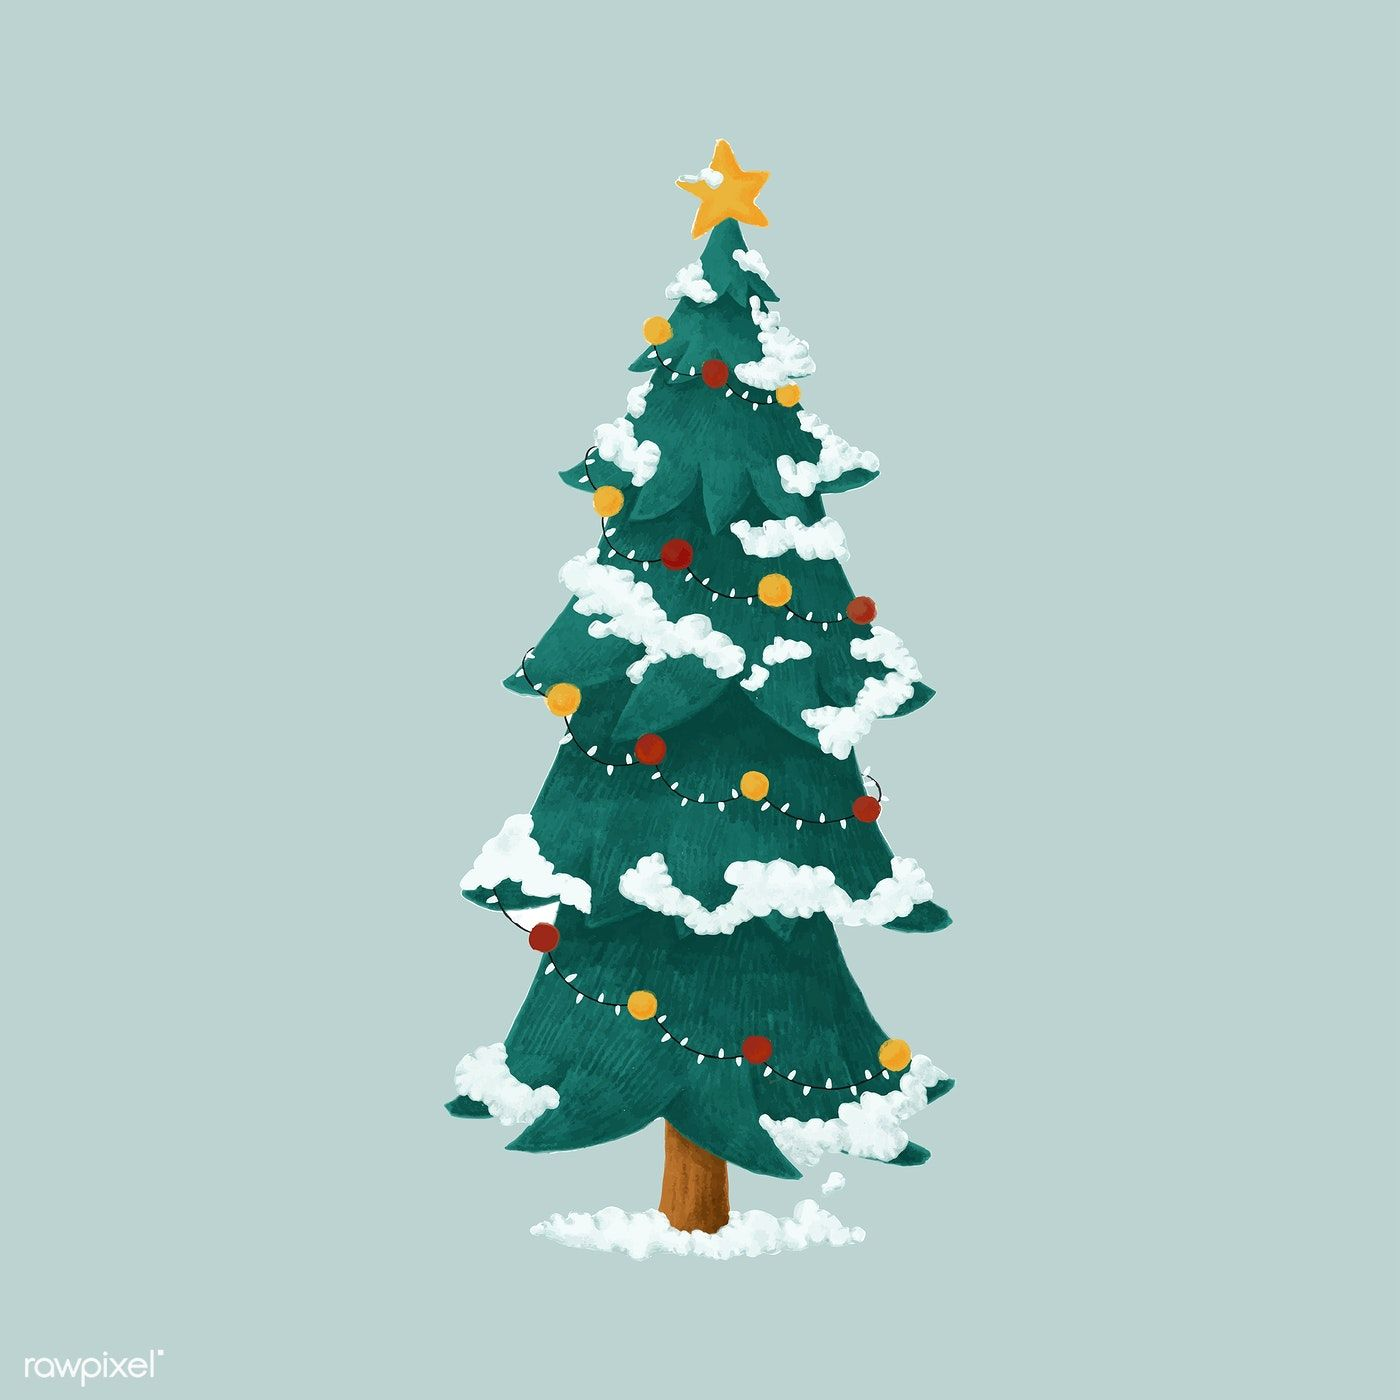 Hand Drawn Decorated Christmas Tree Illustration Free Image By Rawpixel Com Christmas Tree Drawing Christmas Illustration Cartoon Christmas Tree